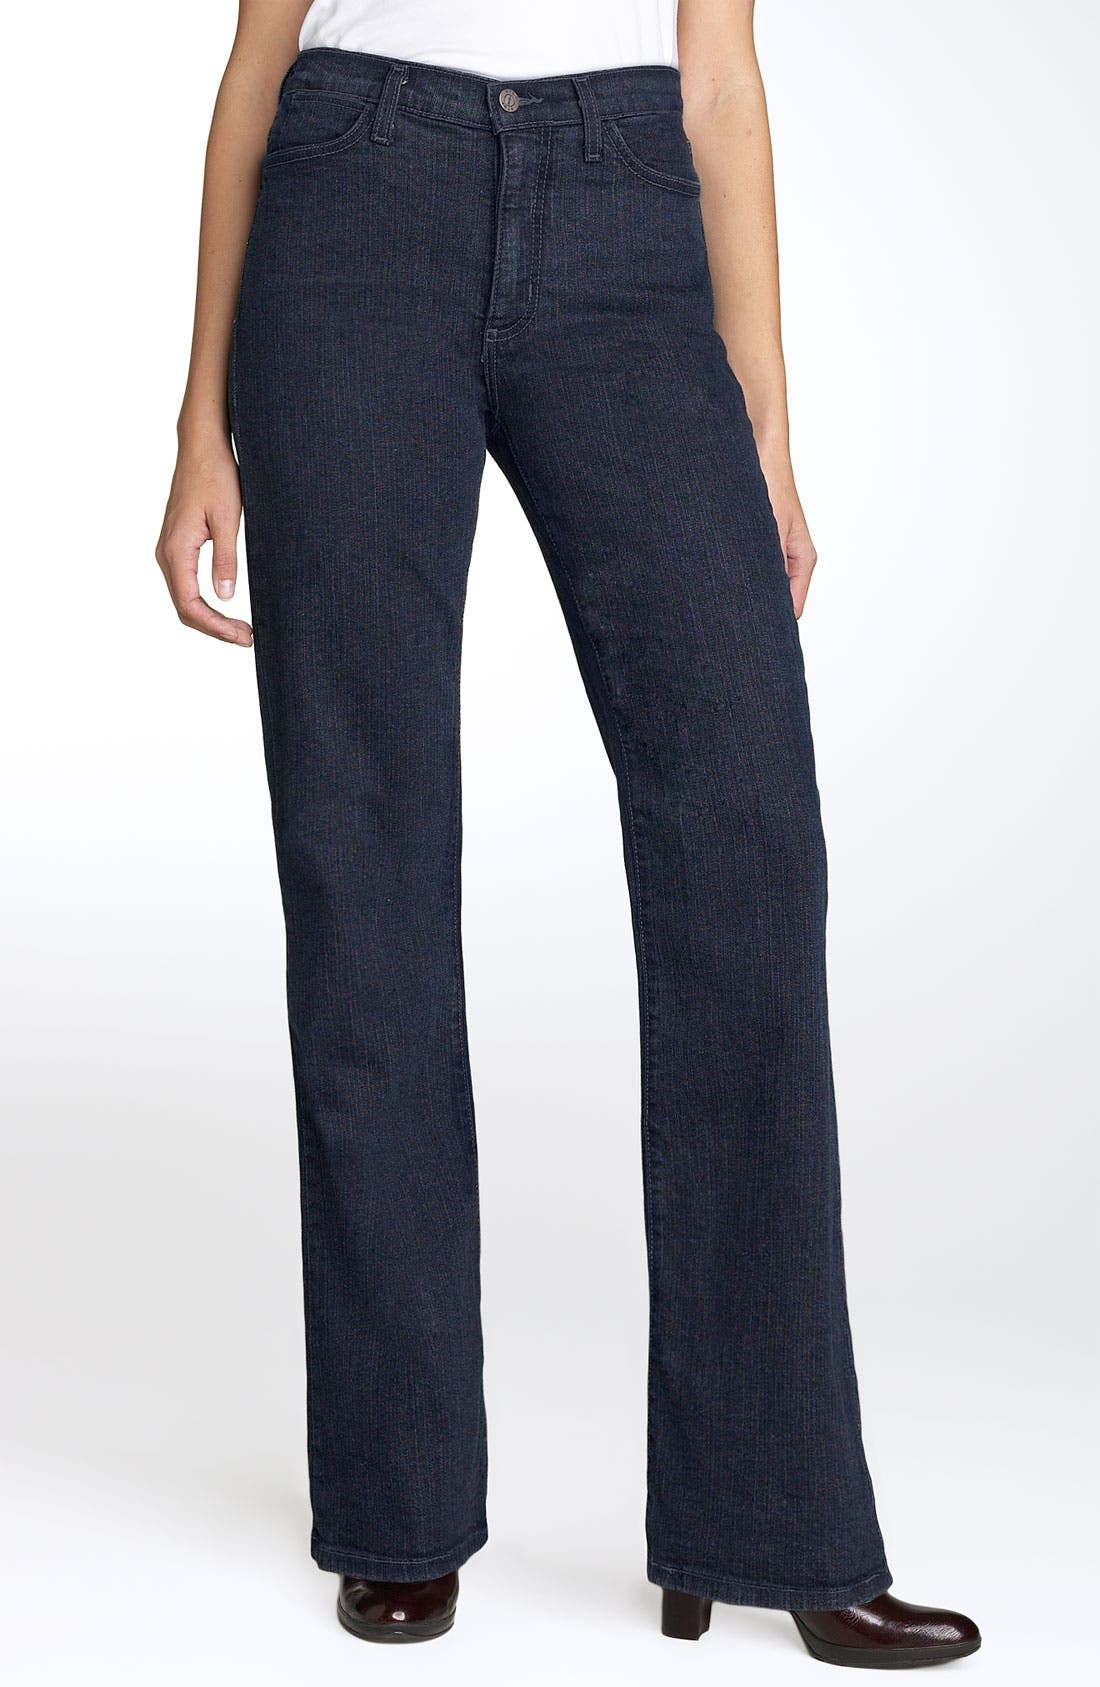 Alternate Image 1 Selected - NYDJ 'Marilyn' Stretch Straight Leg Jeans (Blue Black) (Regular & Petite)